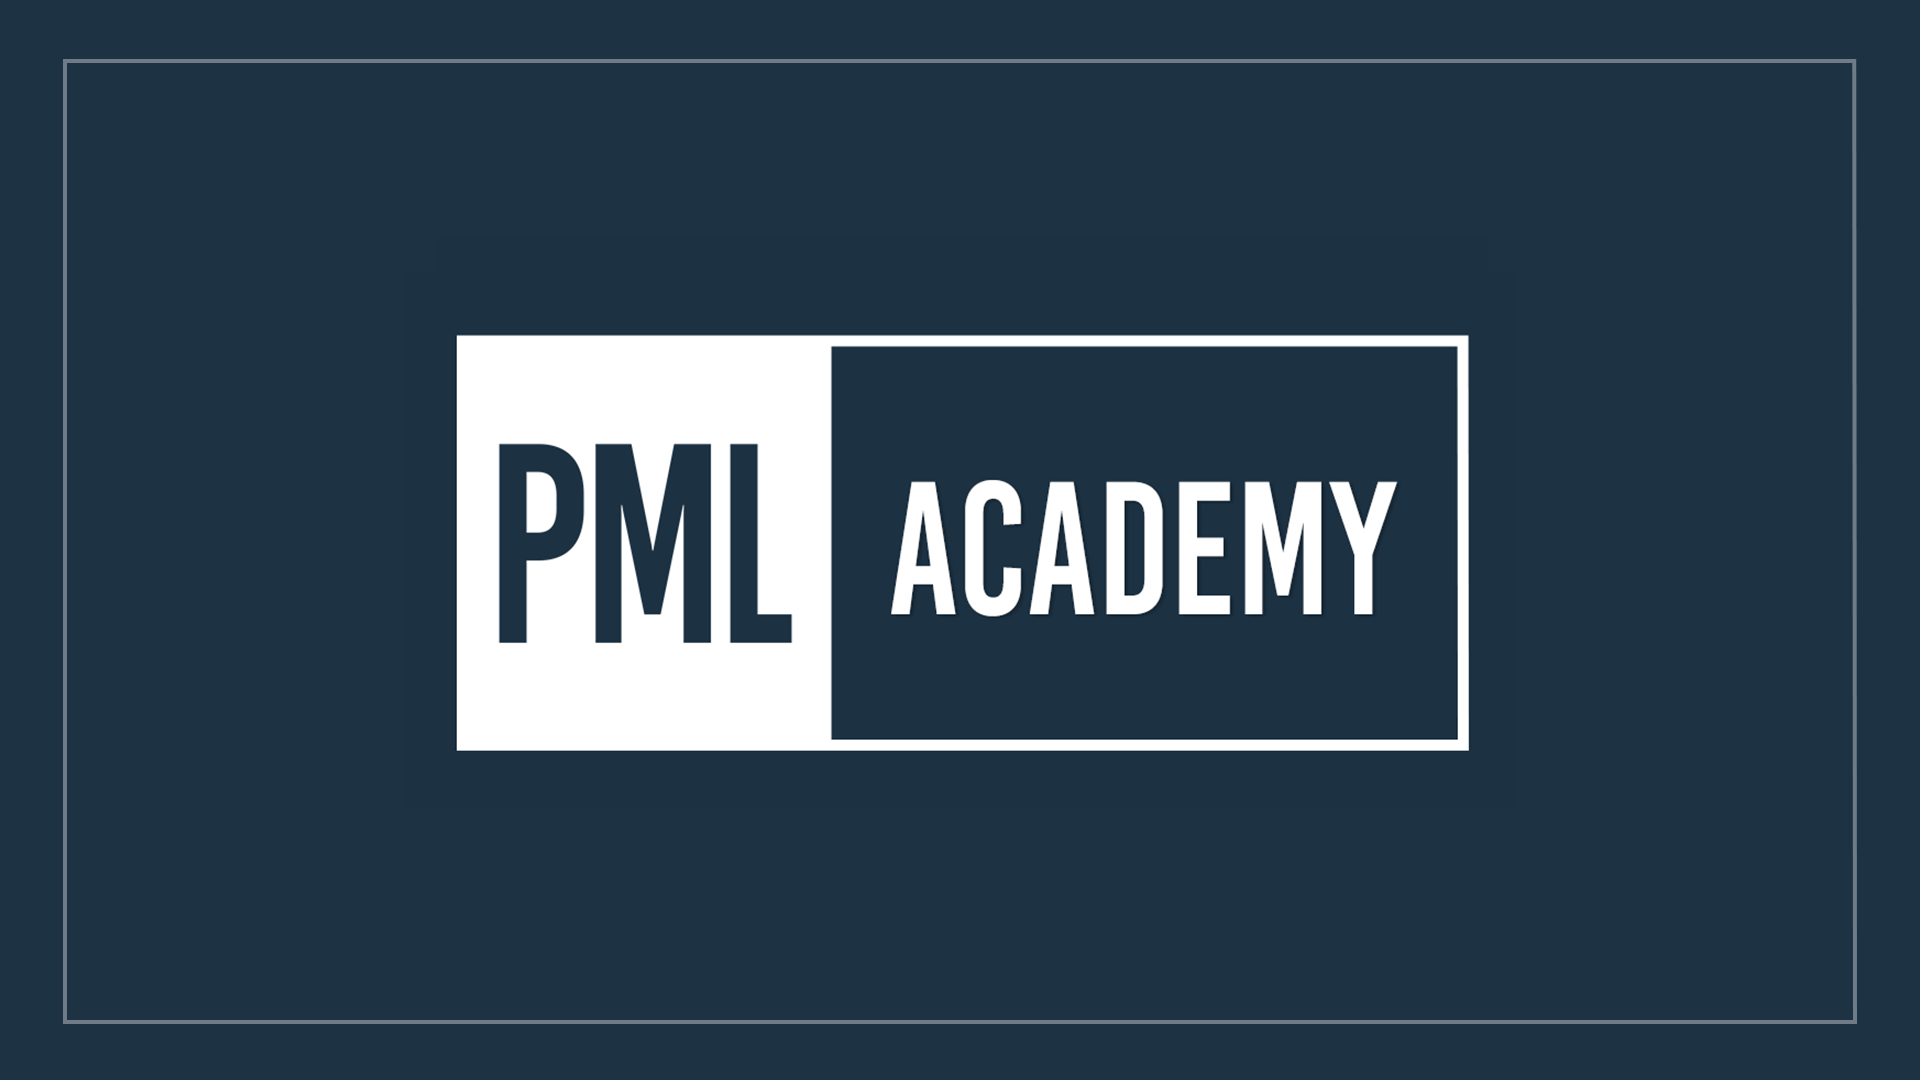 PML ACADEMY - The Complete Ableton Producer | Production